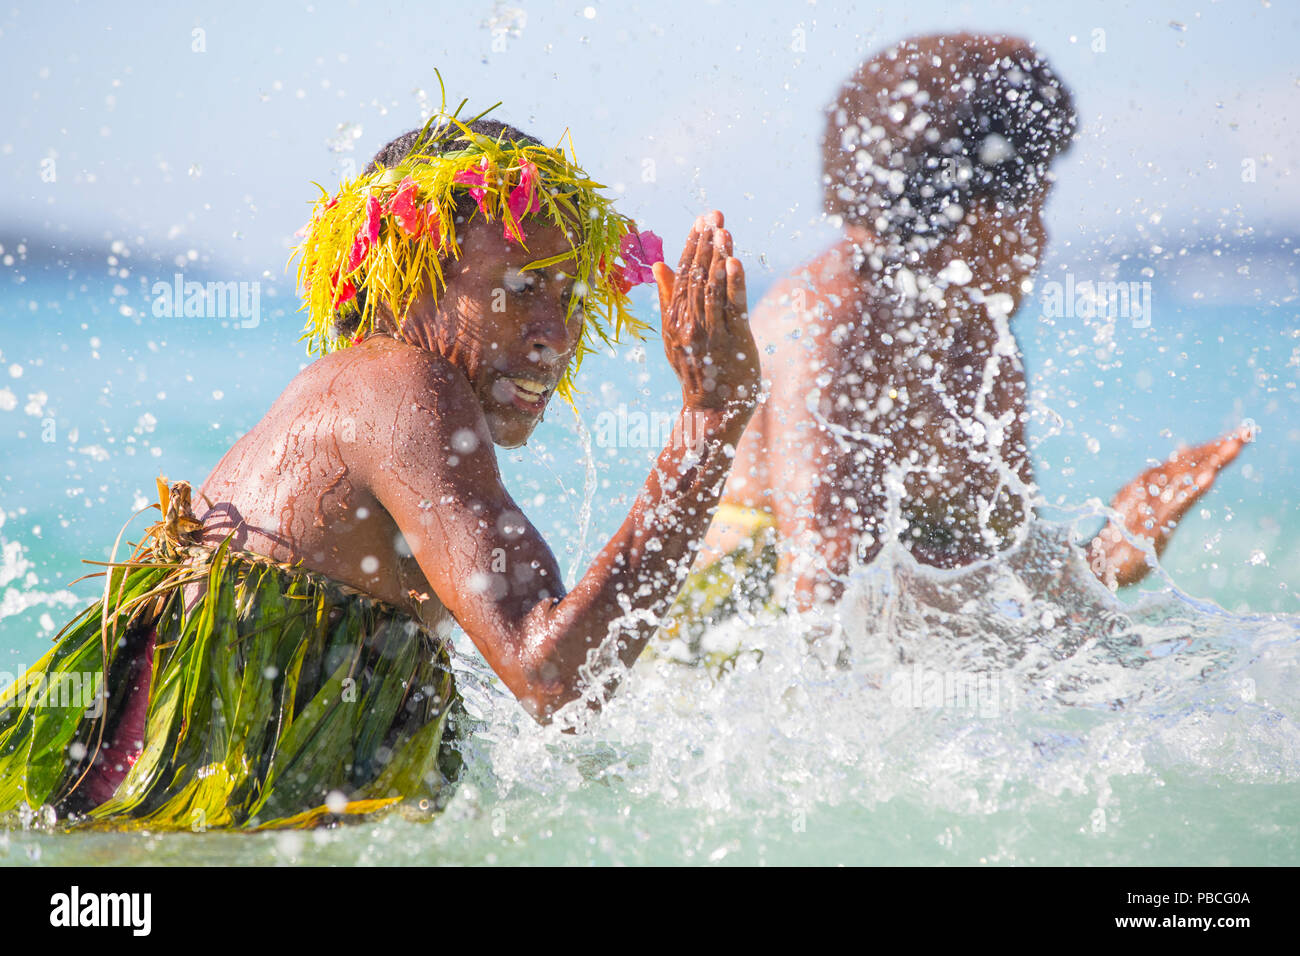 Vanuatu Water Music performed only by Women - Stock Image